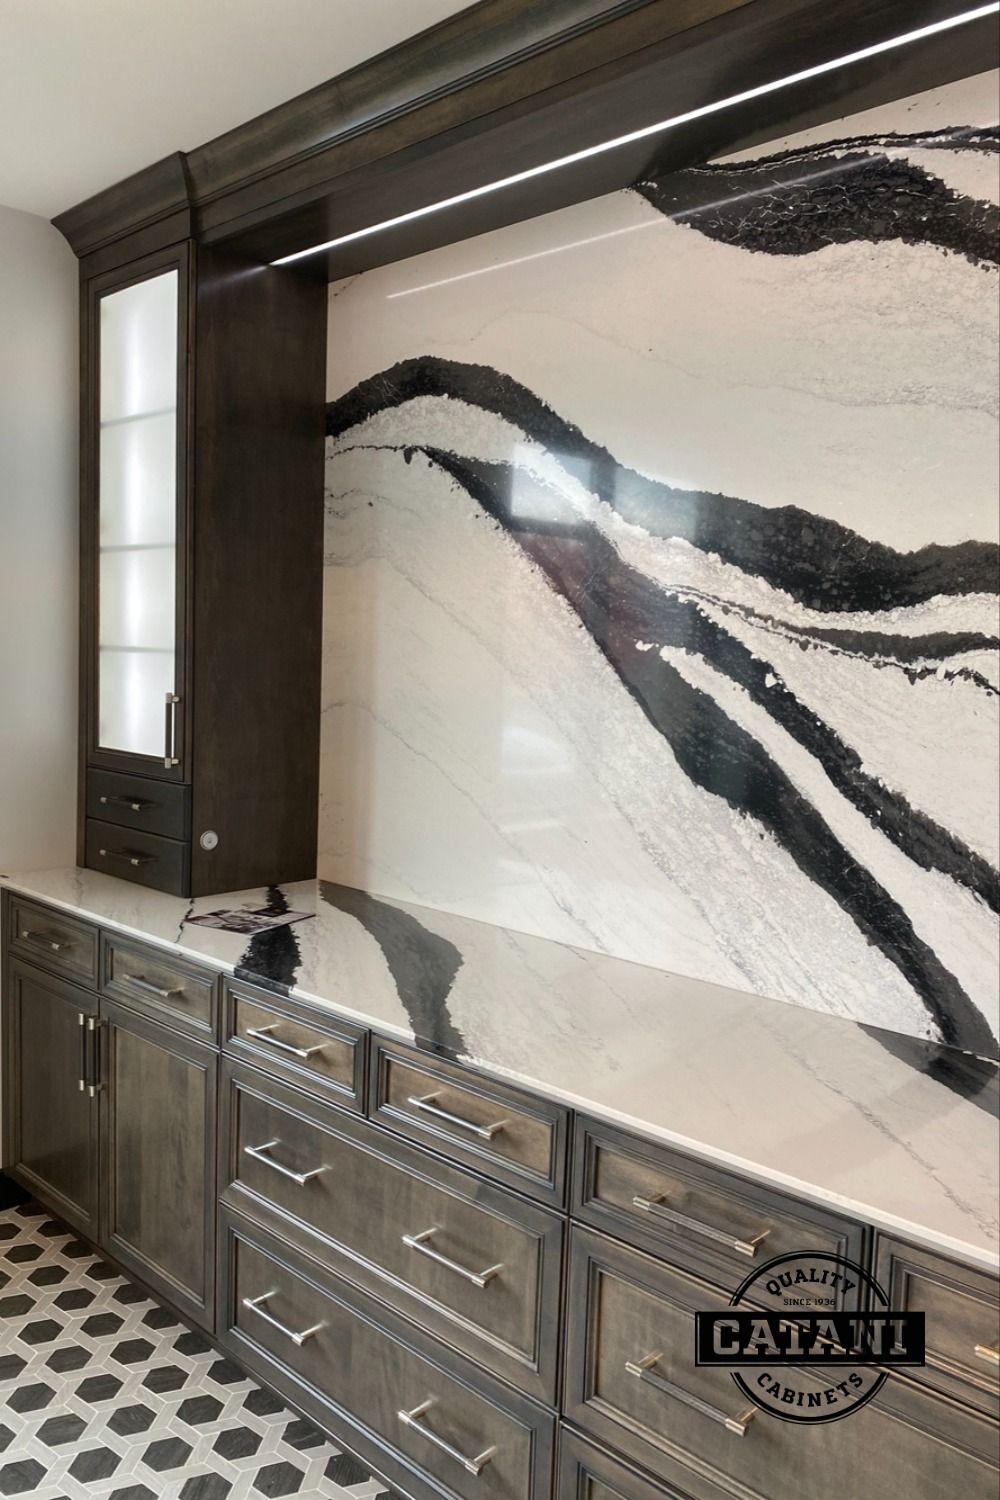 Check out the classic but striking effect of this black and white marble centerpiece to match the modern elegancy of this cabinet design 🖤🤍 #marbledesign #marbledecor #remodelingideas . . . . Follow Catani Cabinets on IG and Pinterest for more home and kitchen remodel ideas and inspiration! 🤔💭📌 Click the link below to learn more about our full-service kitchen remodels!